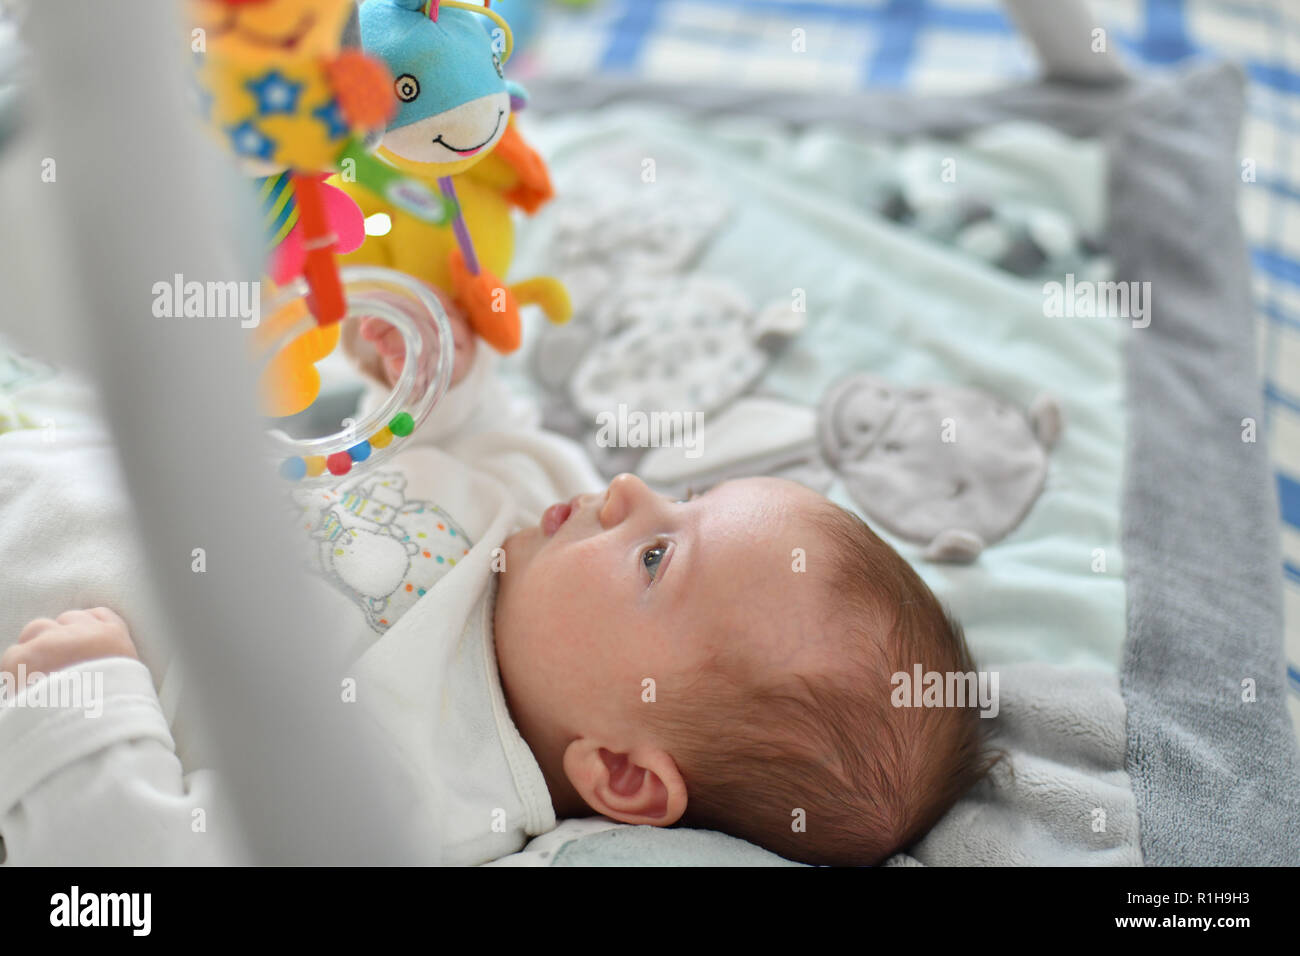 Baby boy playing with hanging toys on developing mat - Stock Image